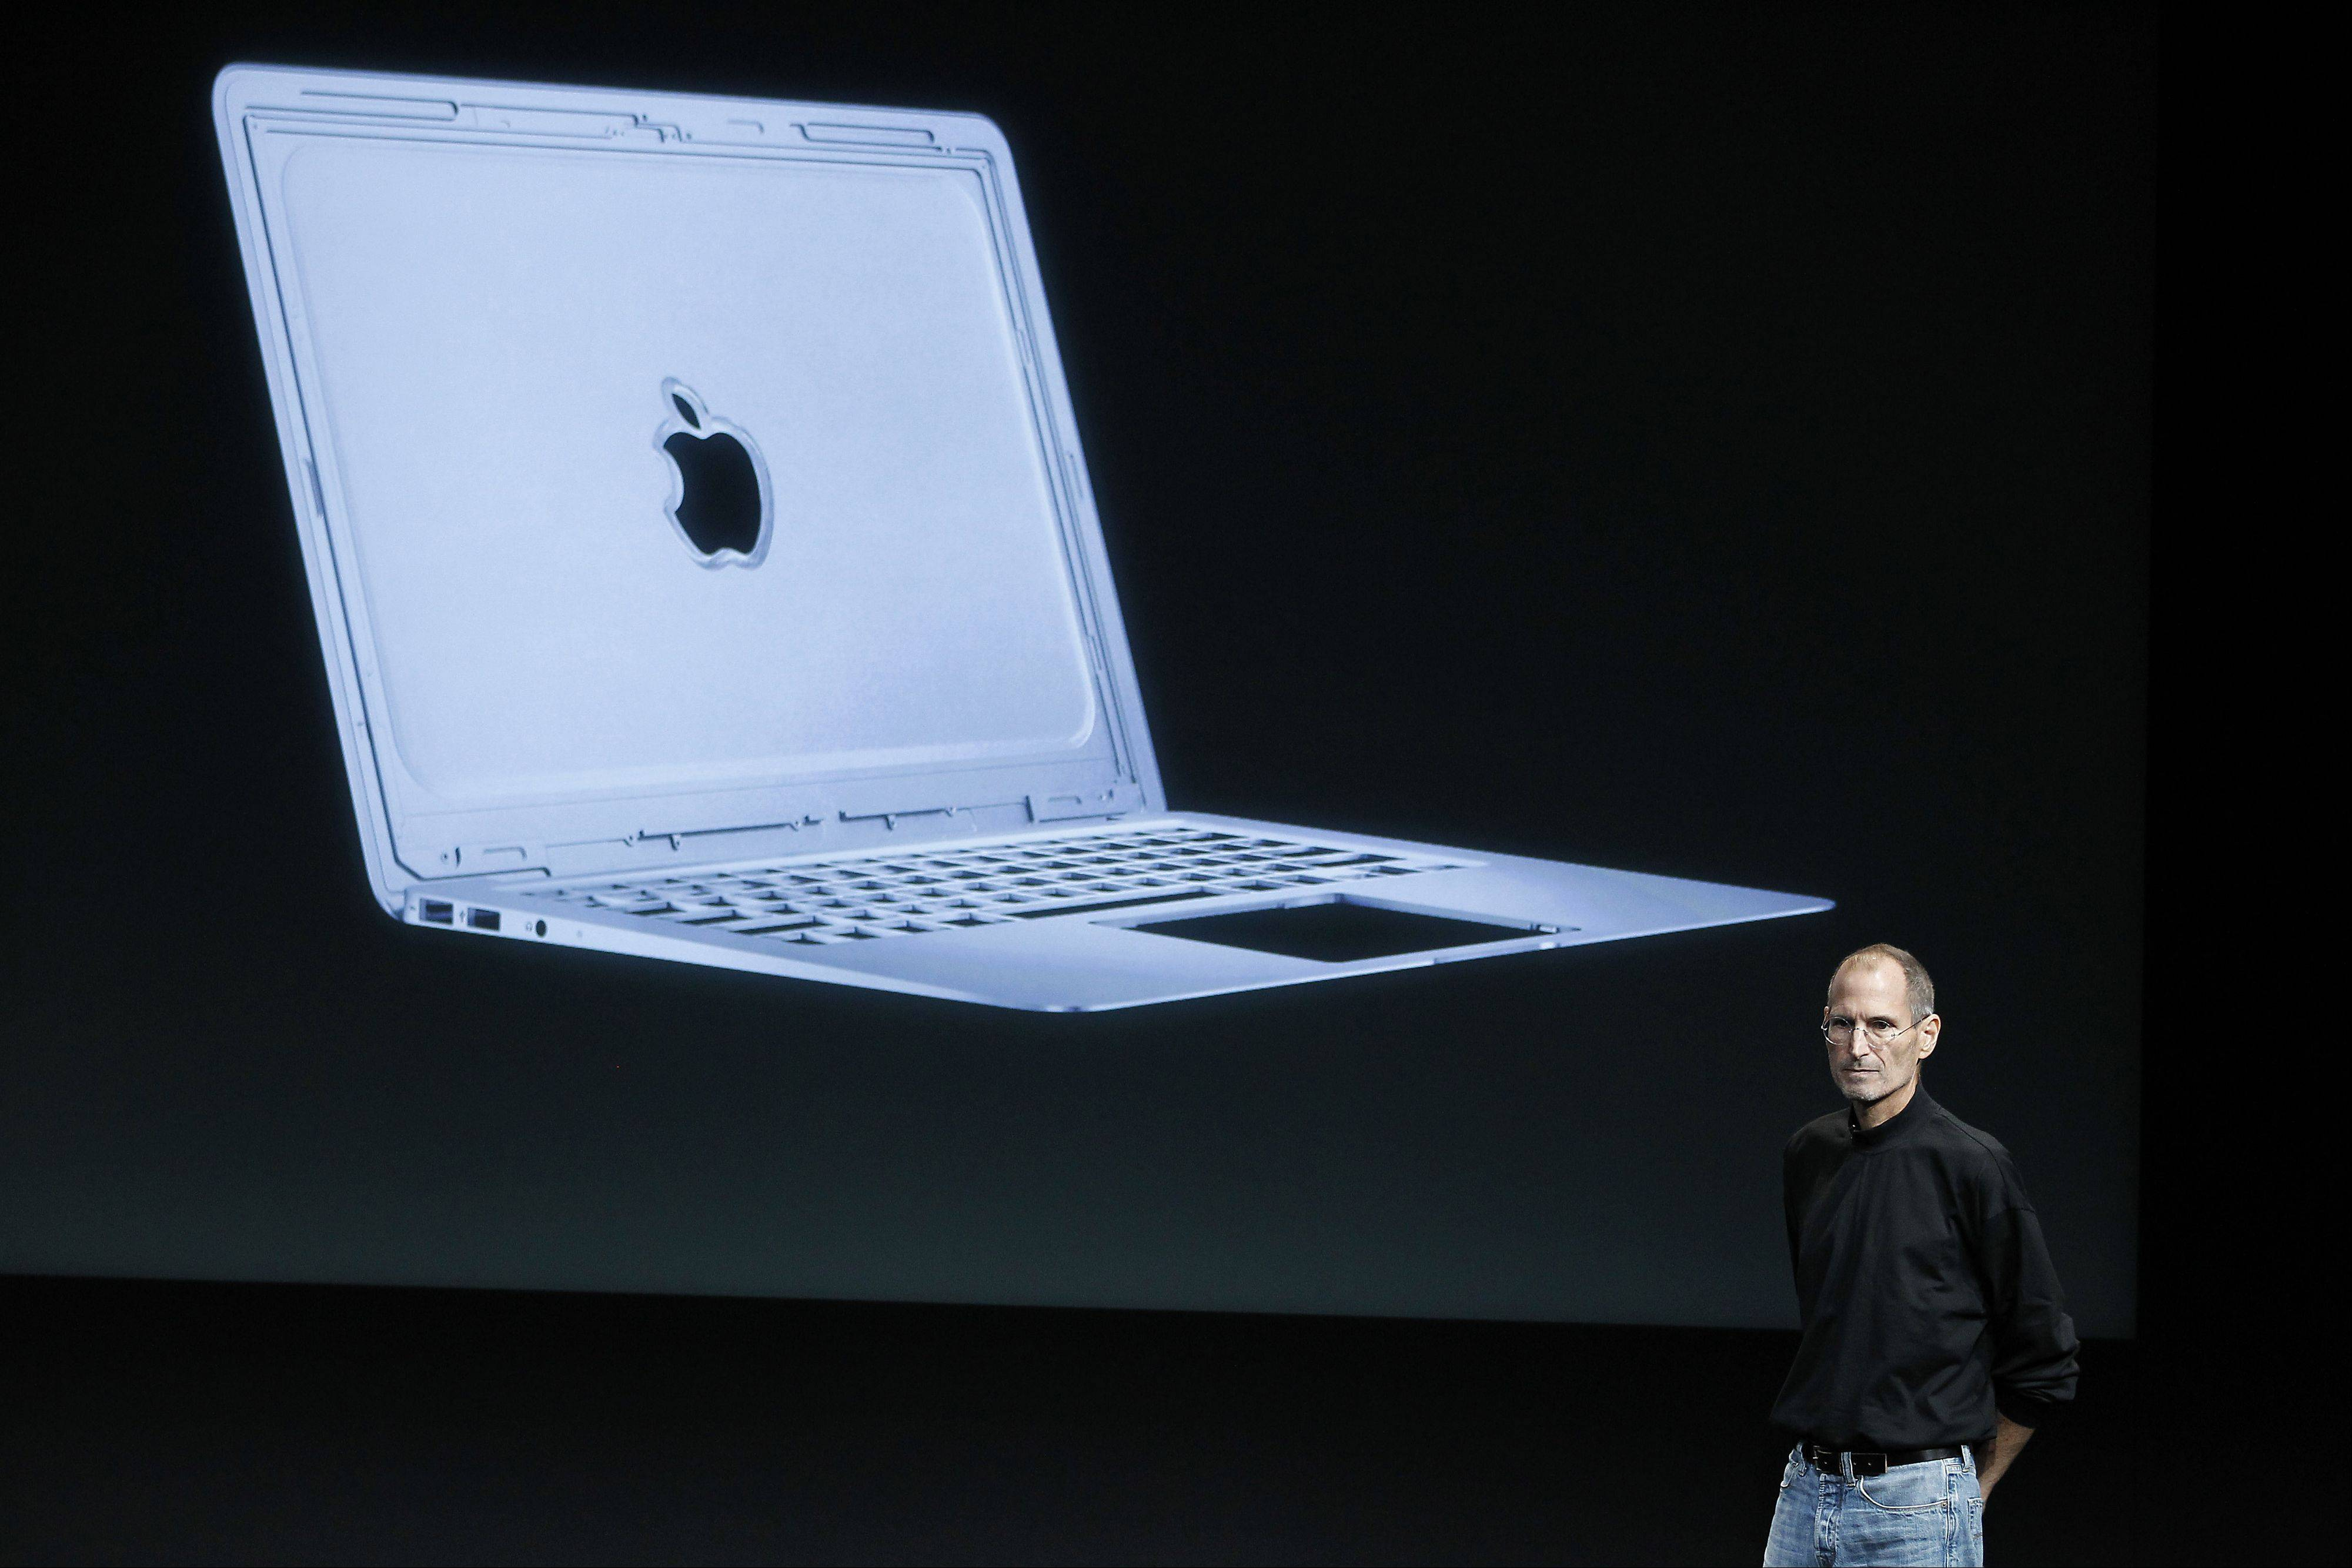 Apple�s new 13-inch MacBook Air promises 12 hours between charges and lots of new Windows-based laptops are offering similarly amazing stats. Why are laptops batteries getting so much better? The nominal reason is the new Intel processor Haswell � the dramatic result of Intel�s yearslong effort to alter its core assumptions about the future of technology.